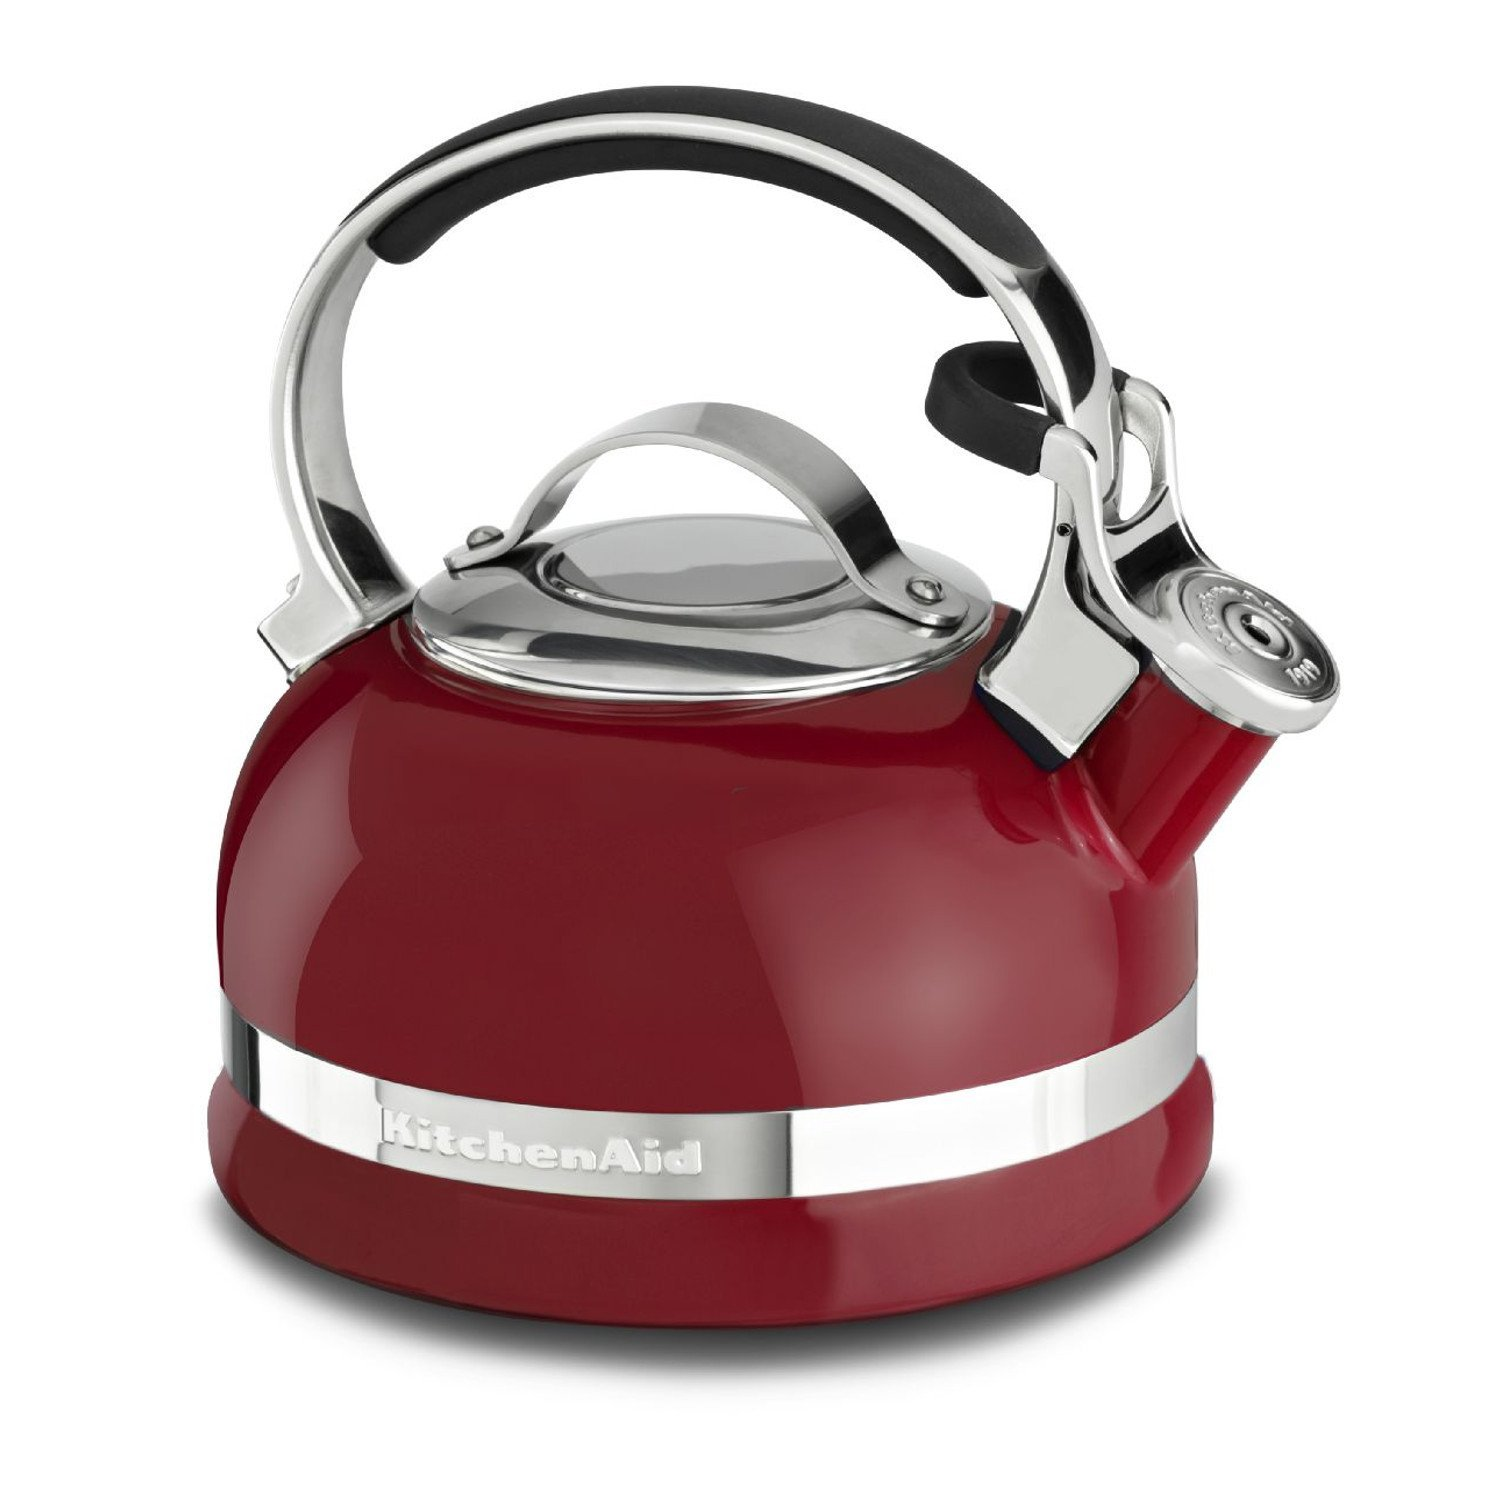 KitchenAid red appliance stovetop kettle